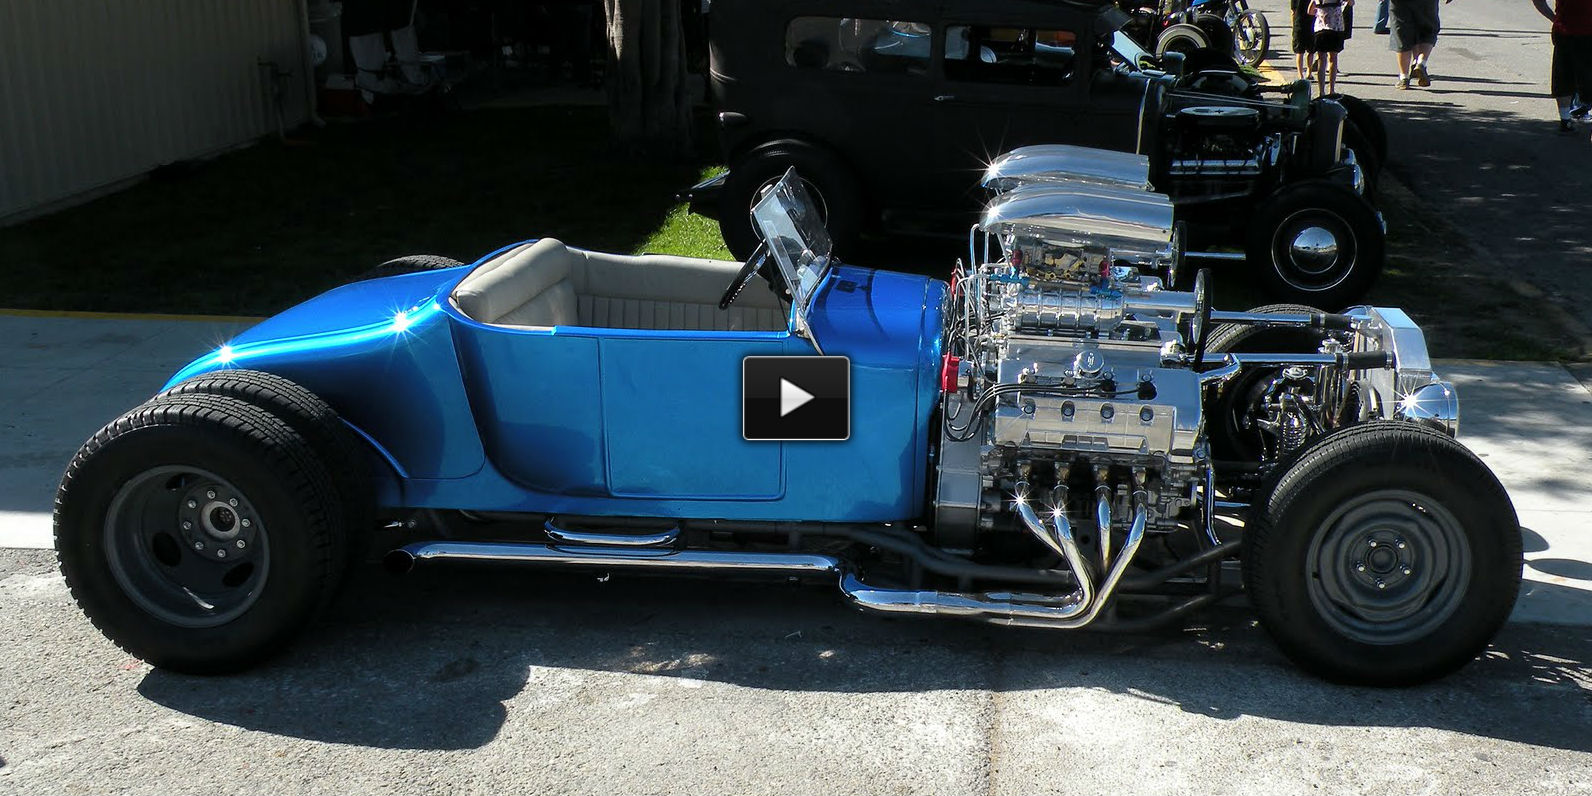 ford rat rod double troubleford rat rod double trouble